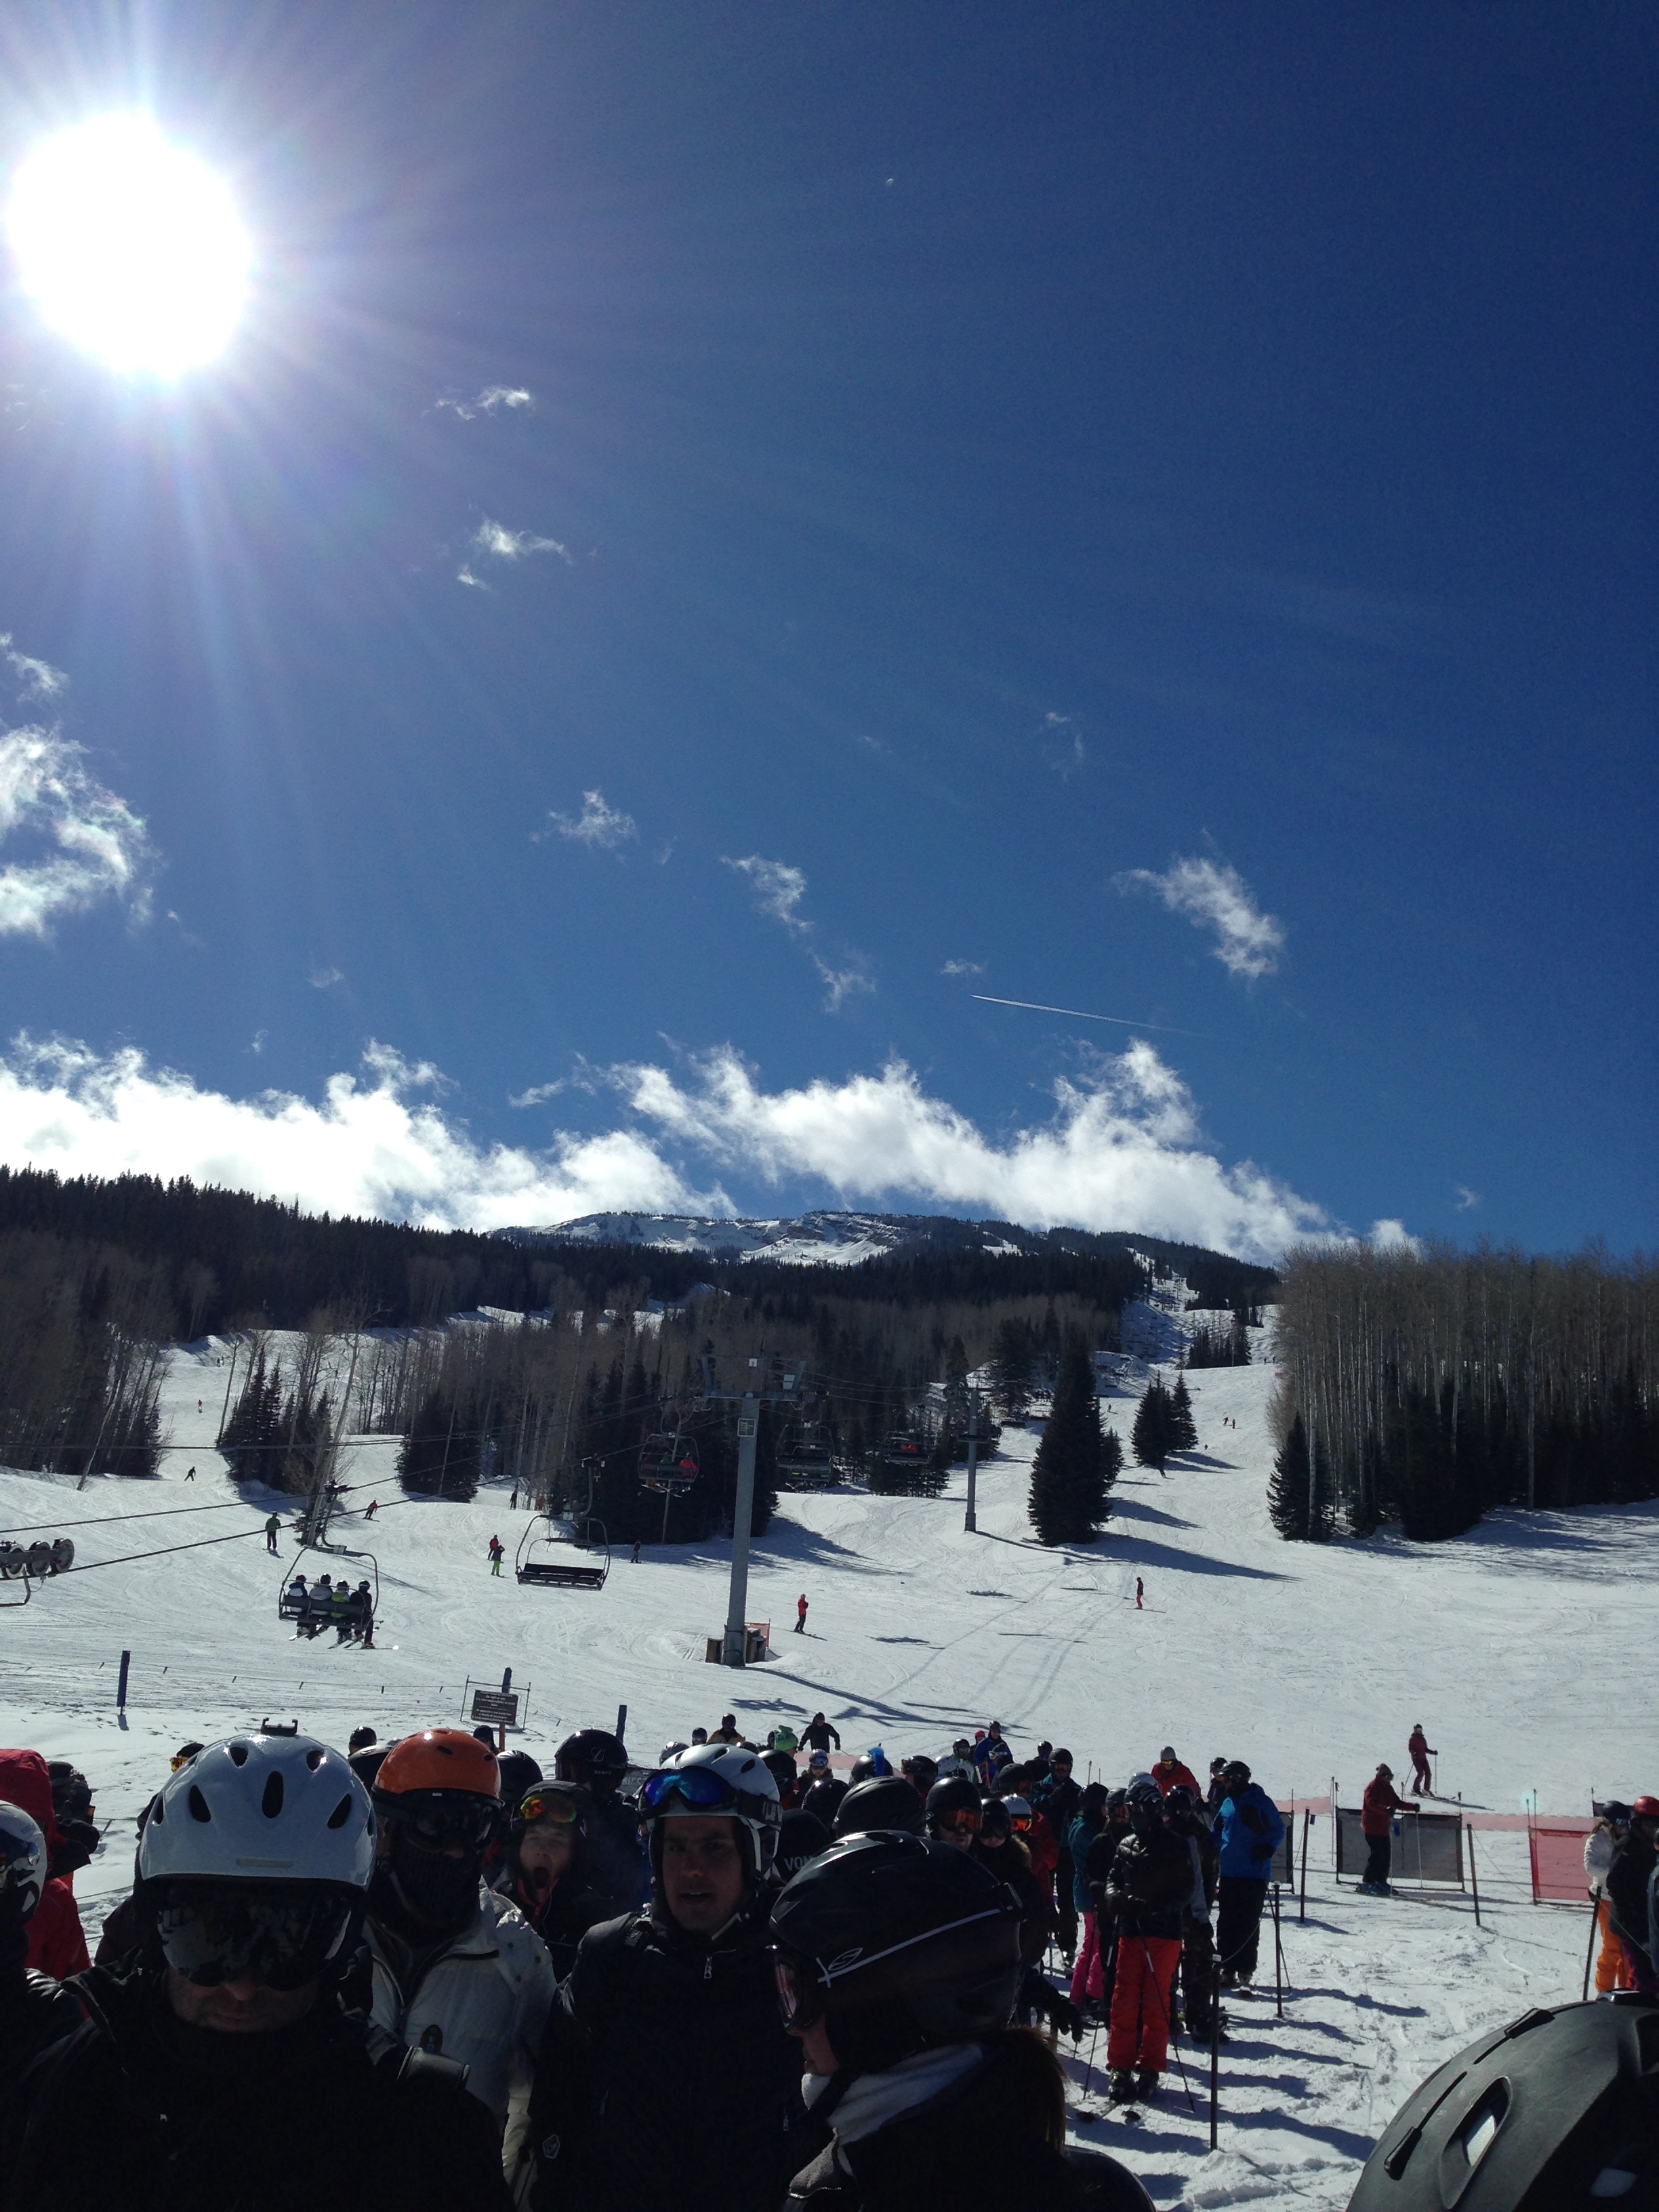 Bluebird days in Aspen while New York was frozen gray